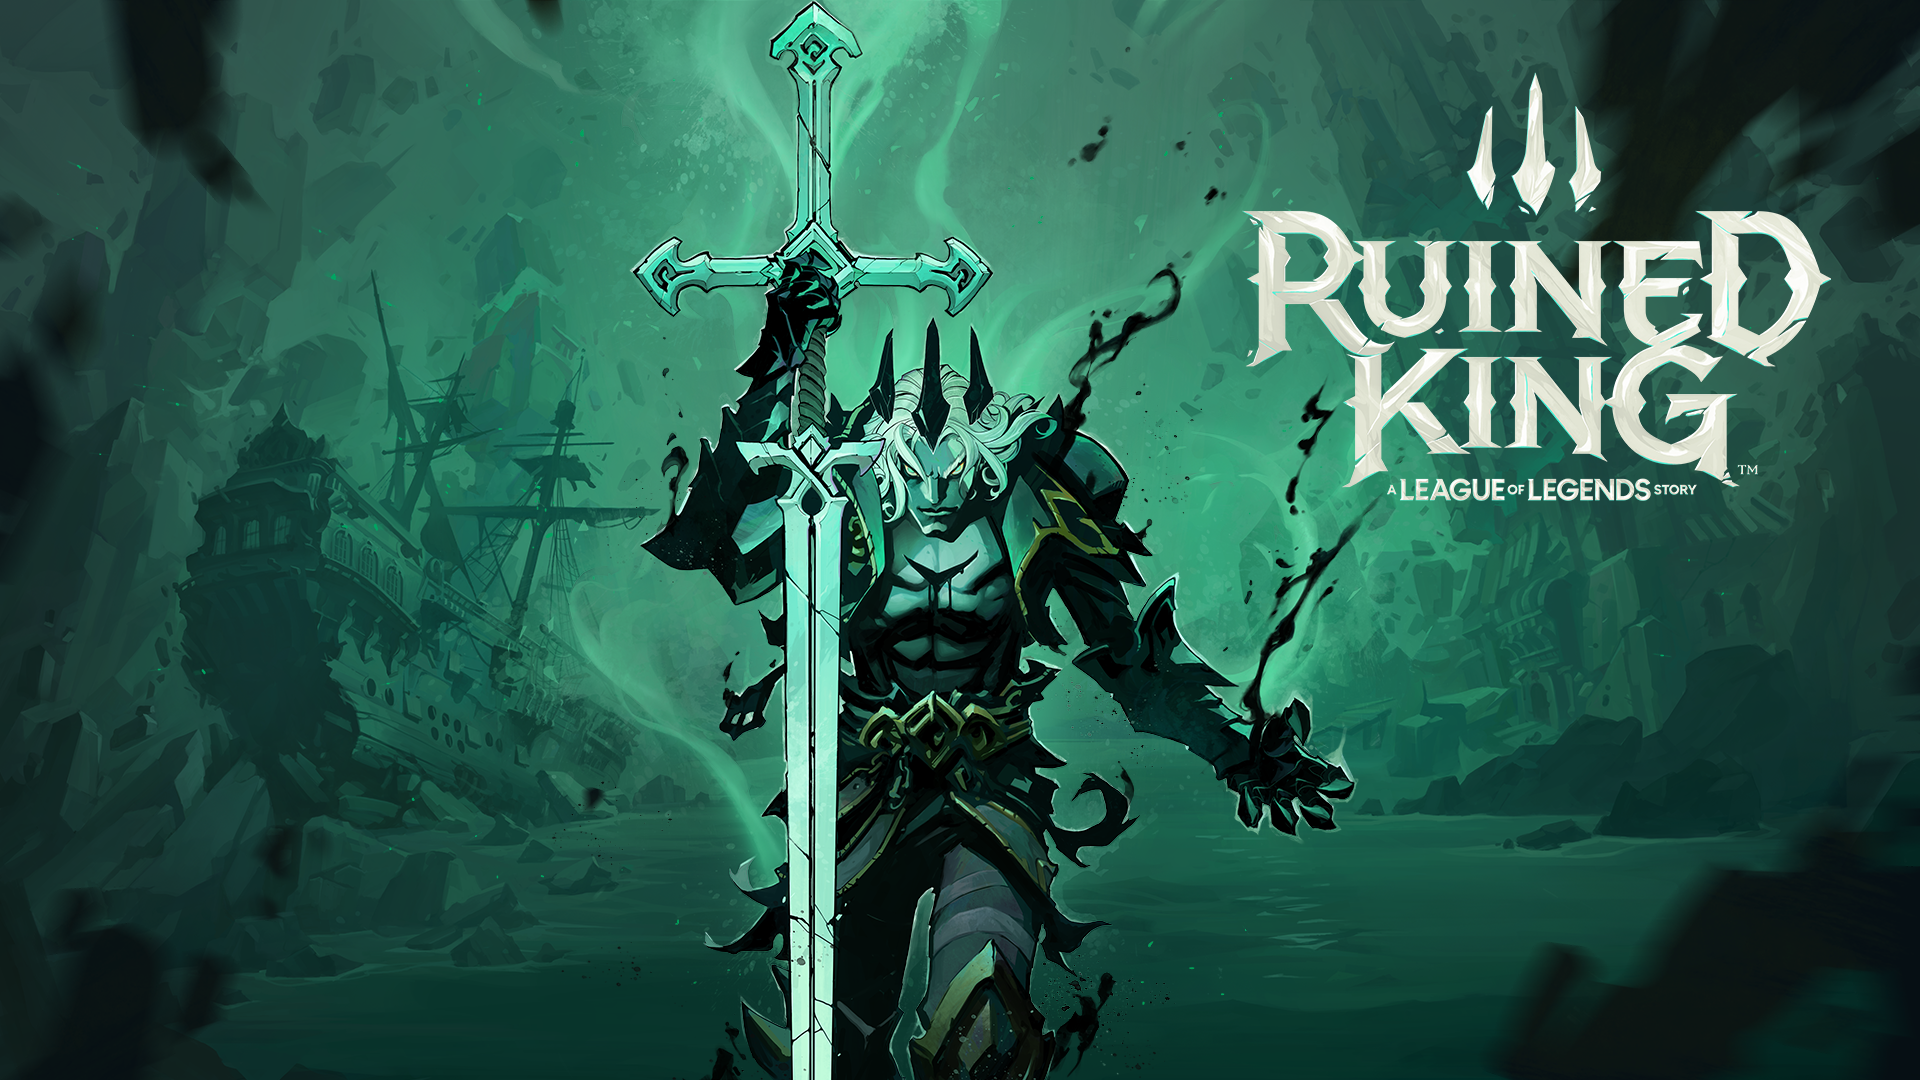 Ruined King: A League of Legends Story delayed to later in 2021